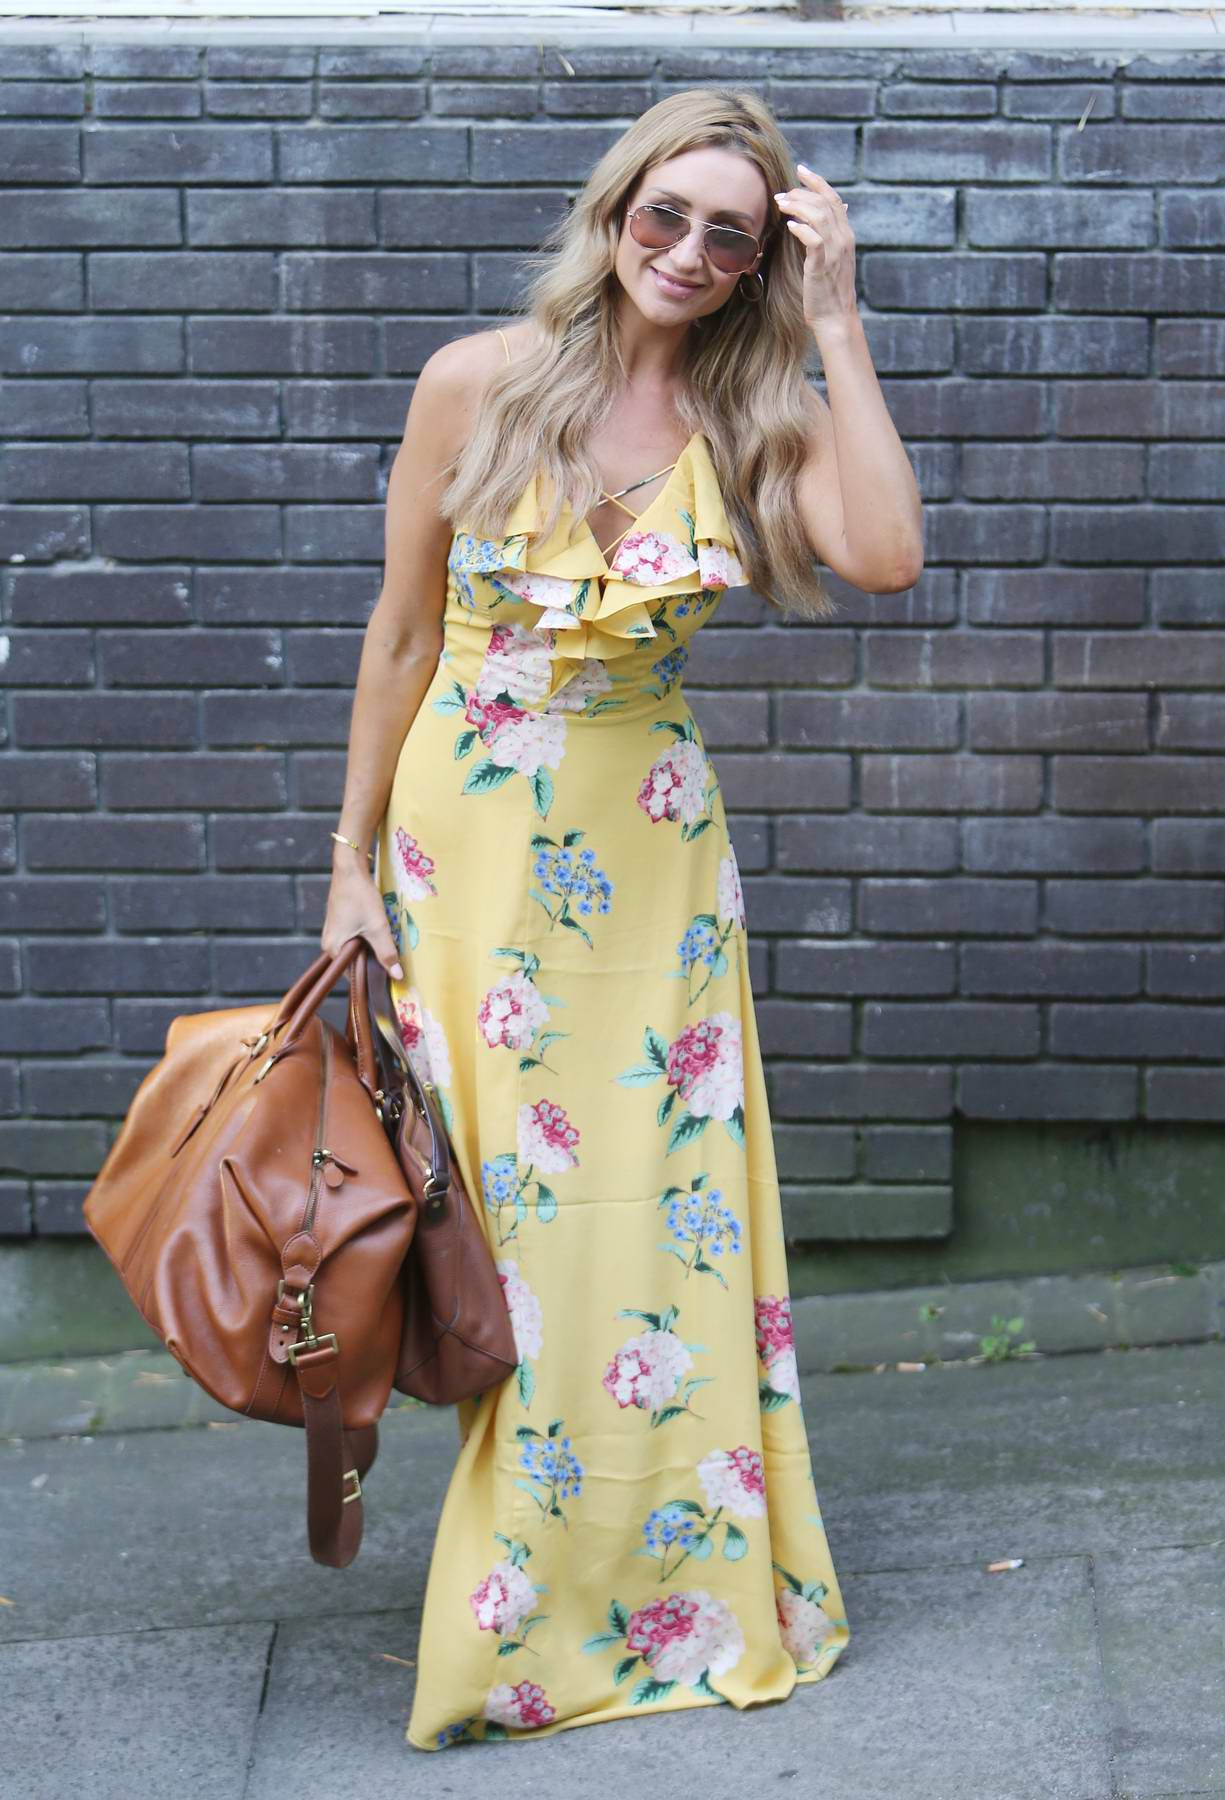 Catherine Tyldesley outside the ITV Studios in London